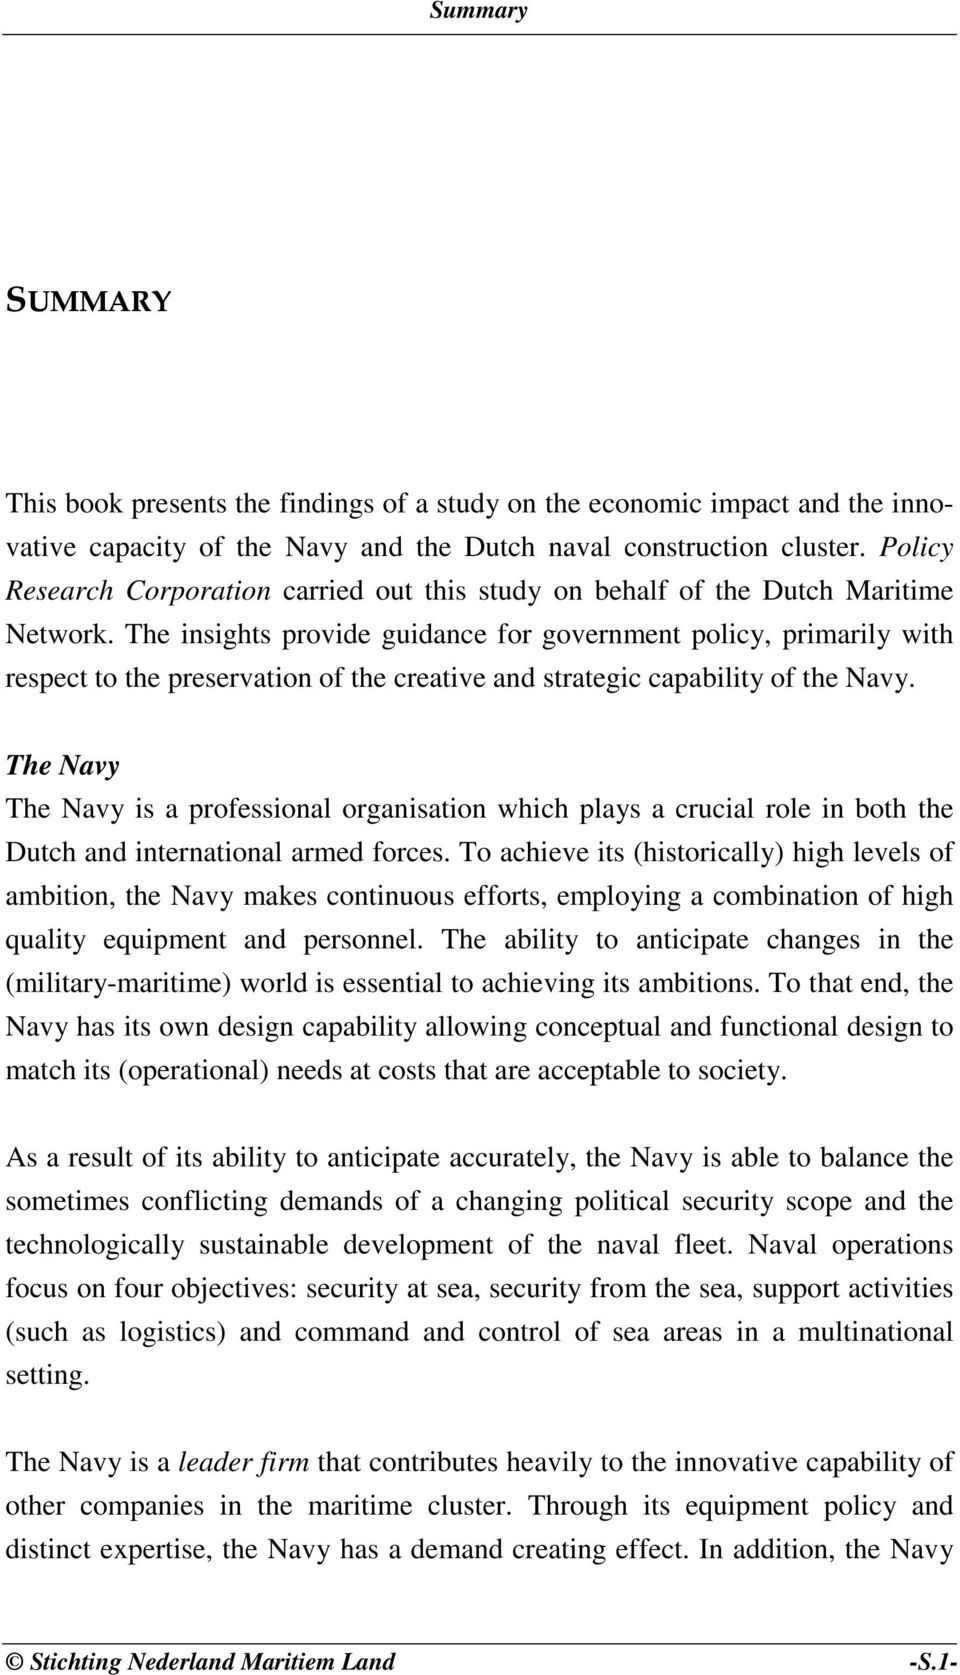 The insights provide guidance for government policy, primarily with respect to the preservation of the creative and strategic capability of the Navy.